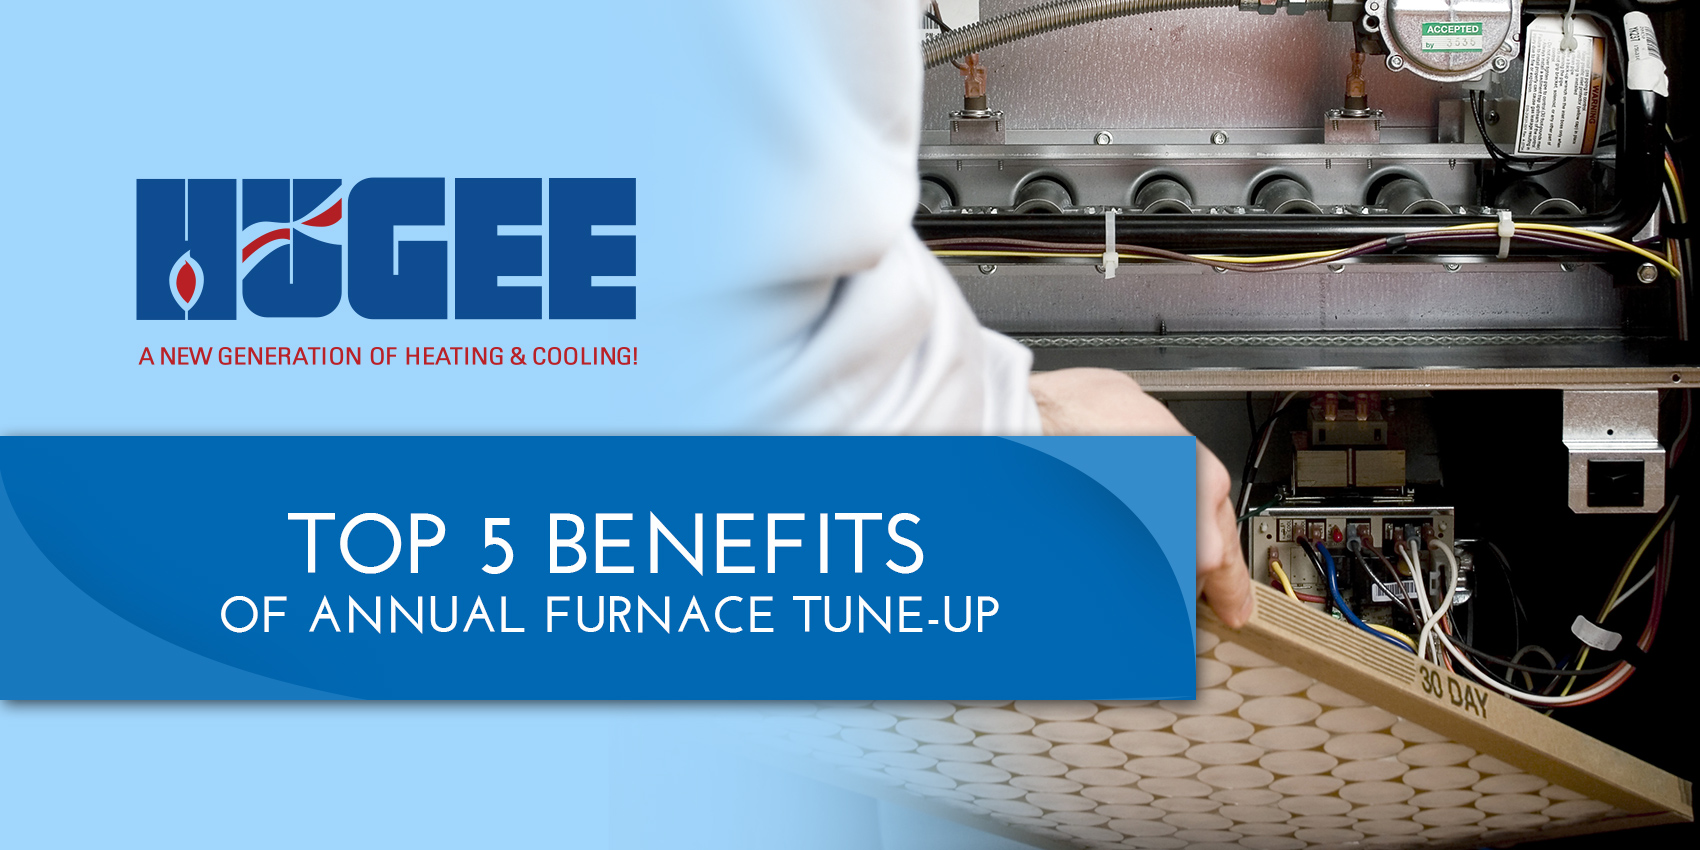 Benefits of Annual Furnace Tune-up